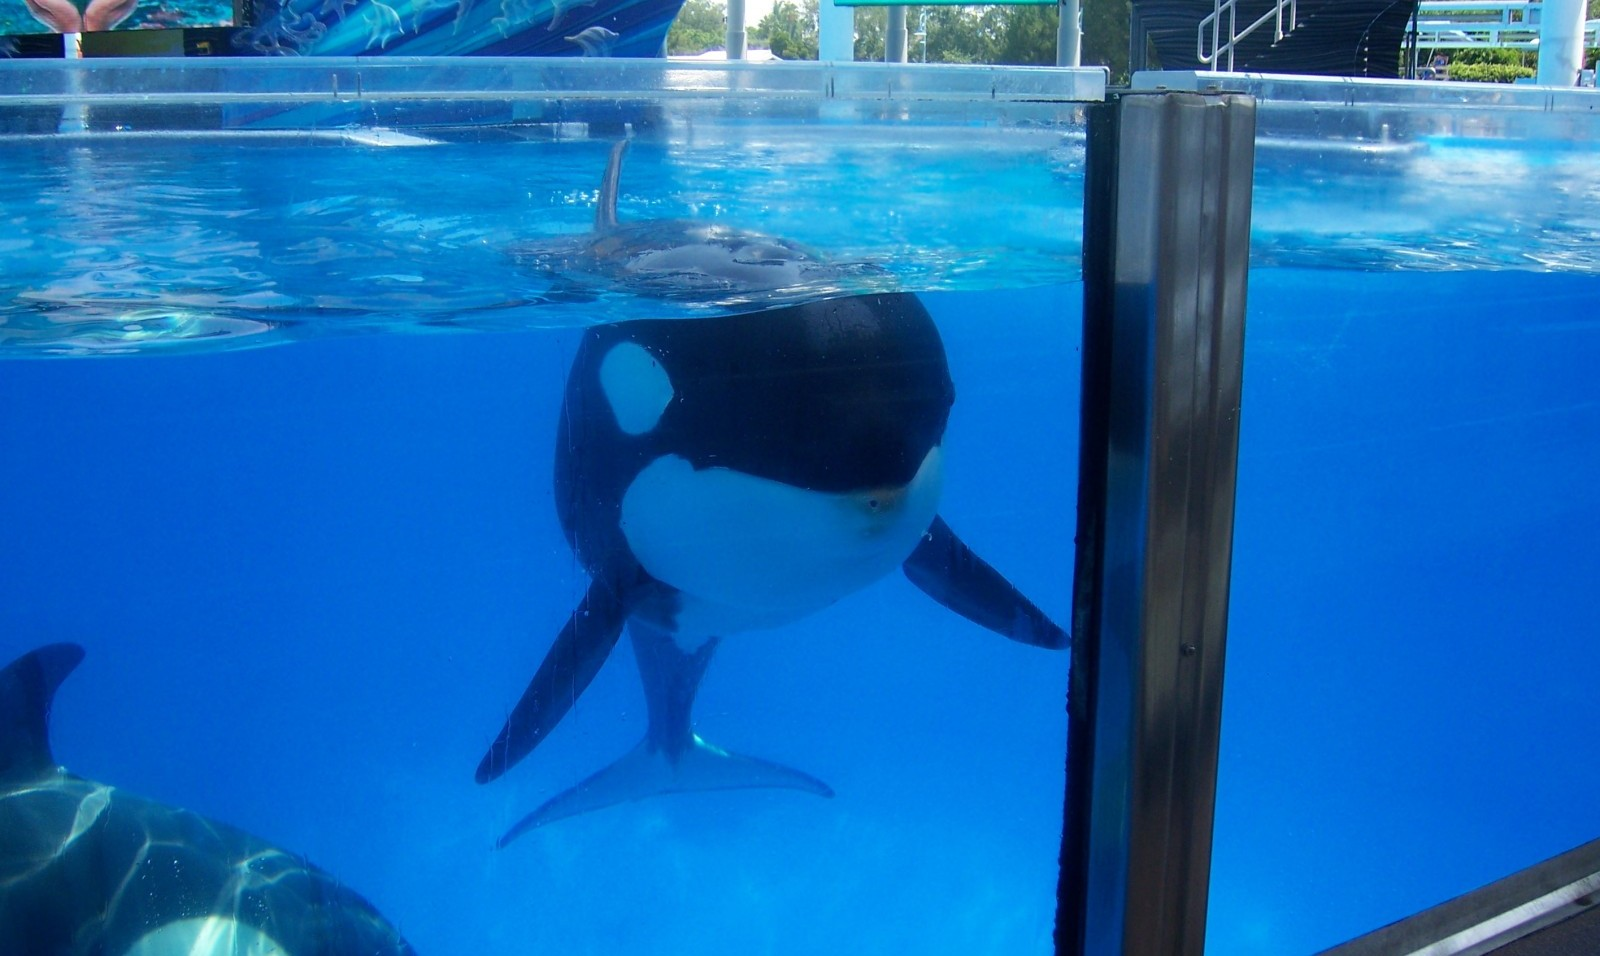 traumatic experiences orcas know all too well